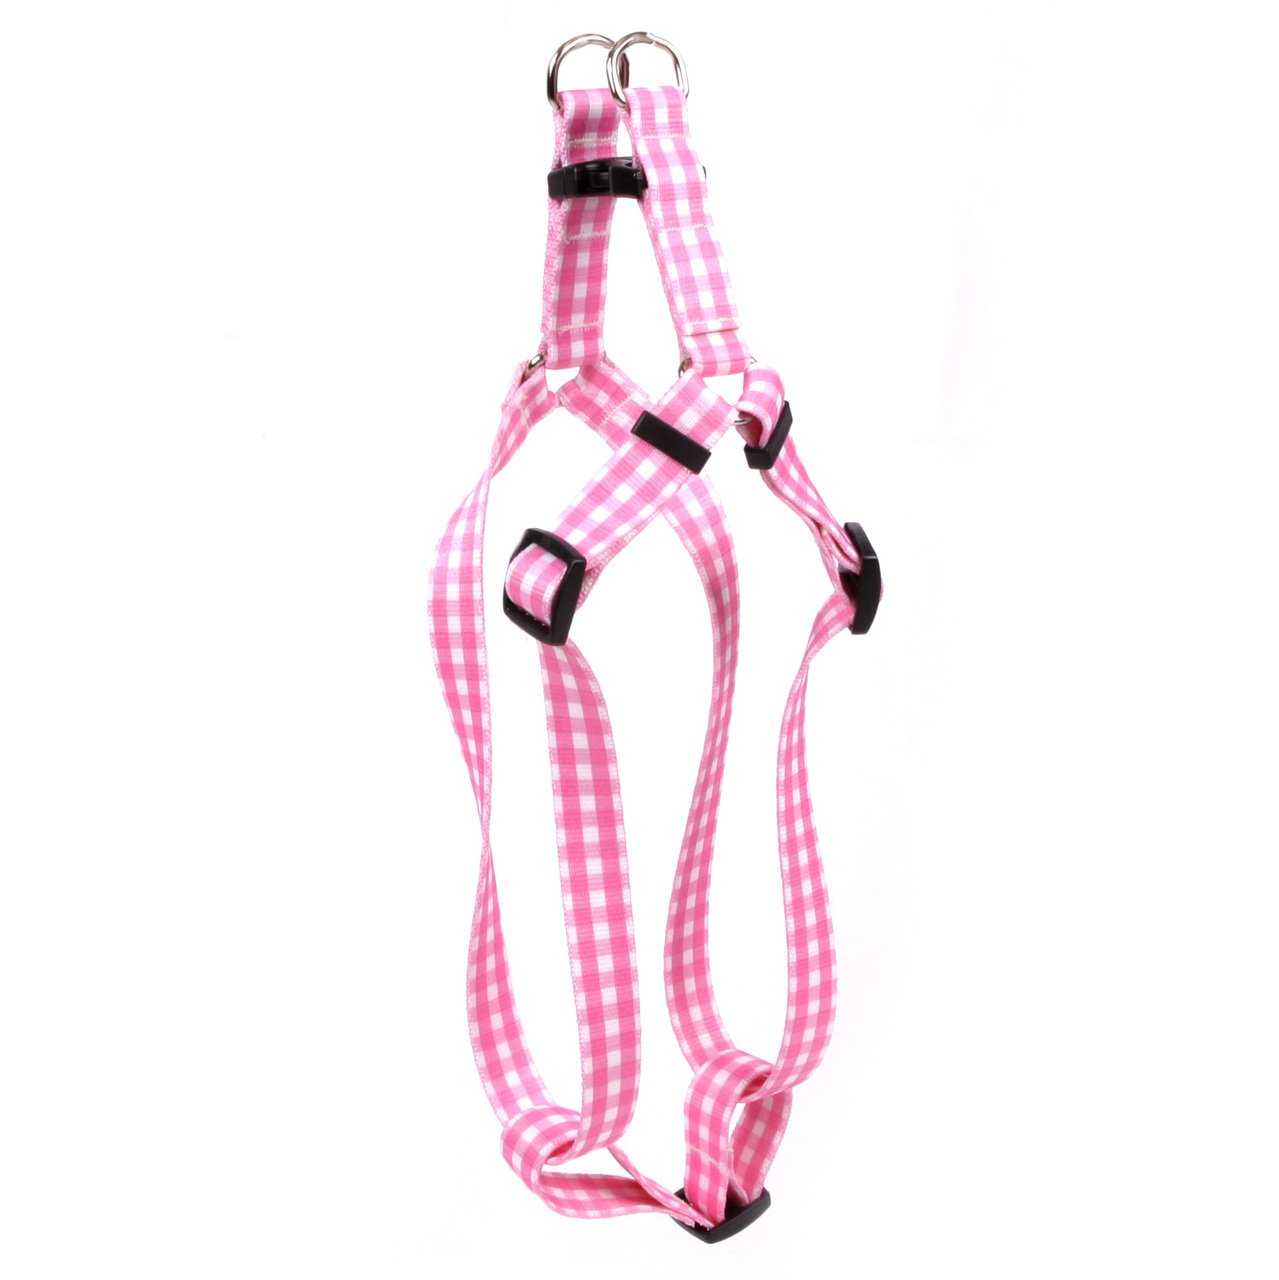 Yellow Dog Design Gingham Pink Step-In Dog Harness 3/4'' Wide And Fits Chest Circumference Of 9 To 15'', Small